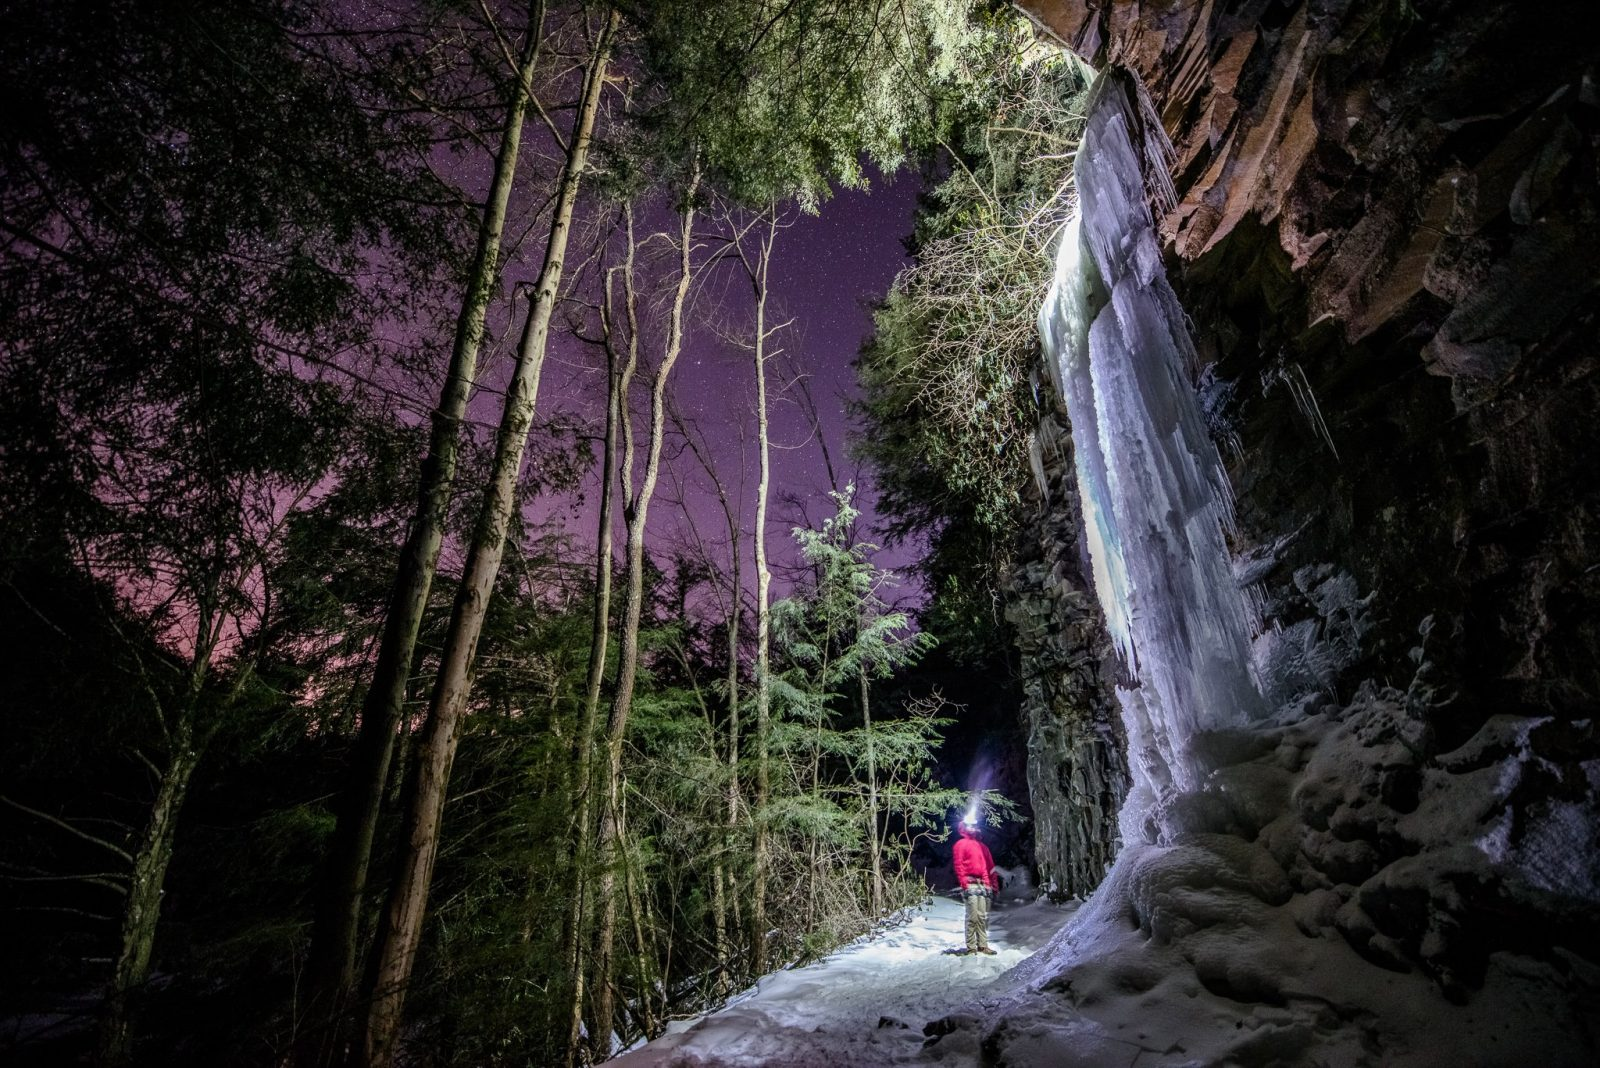 WV Night Photography: Ice Climbing